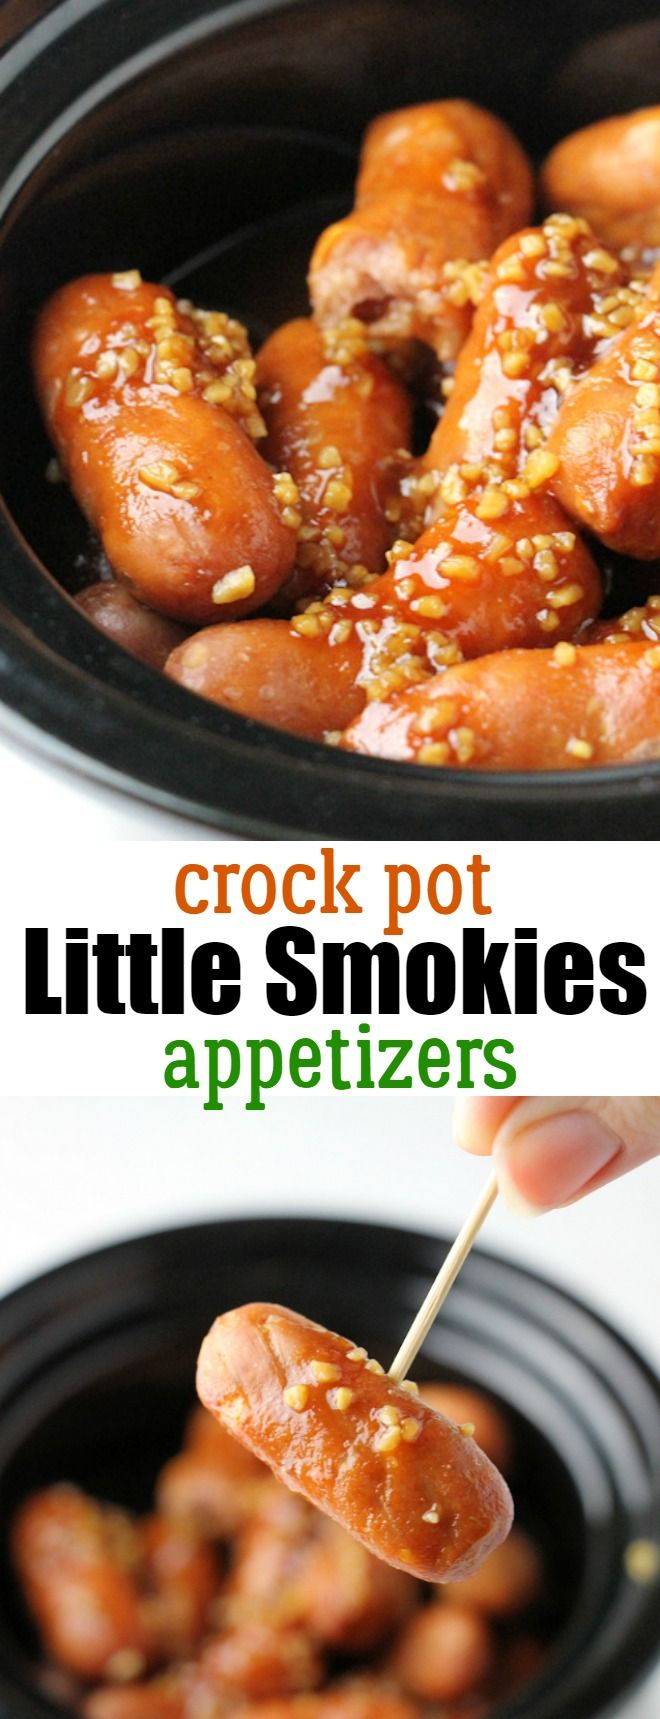 Little Smokies Crock Pot Recipe: Easy Little Smokies Appetizers that your guests will love!